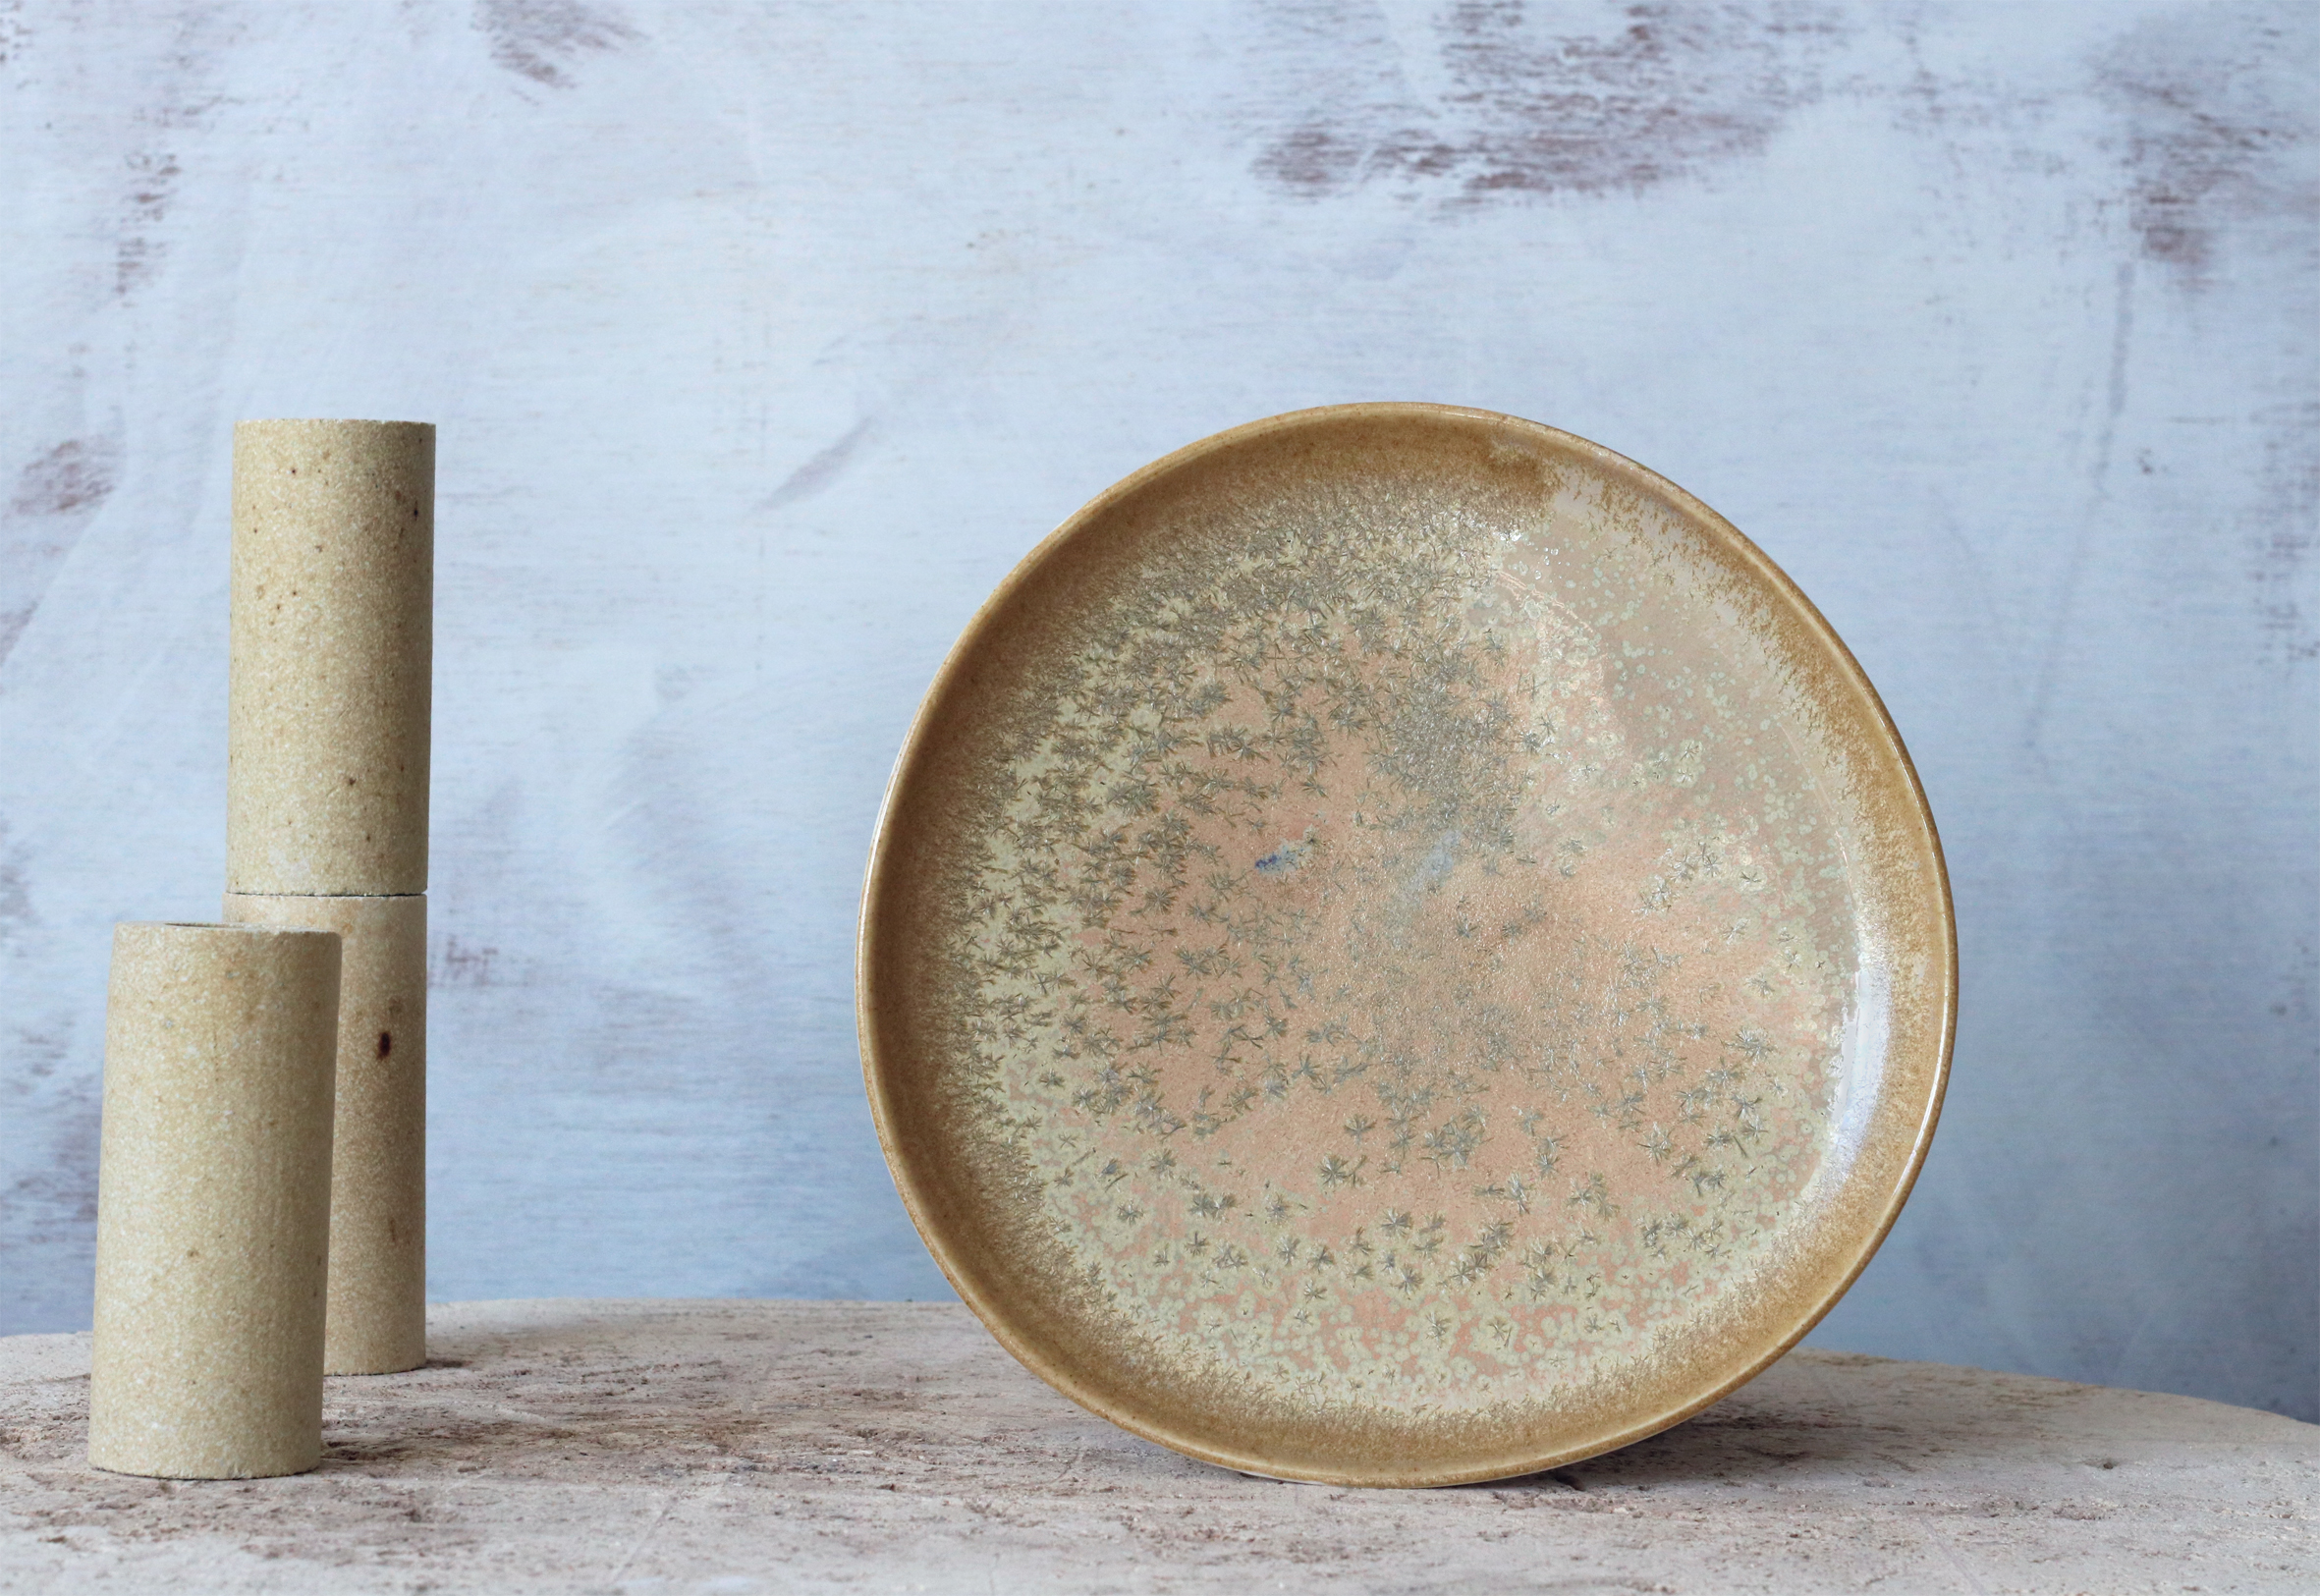 Crystalline glaze on porcelain - one of our material experiments